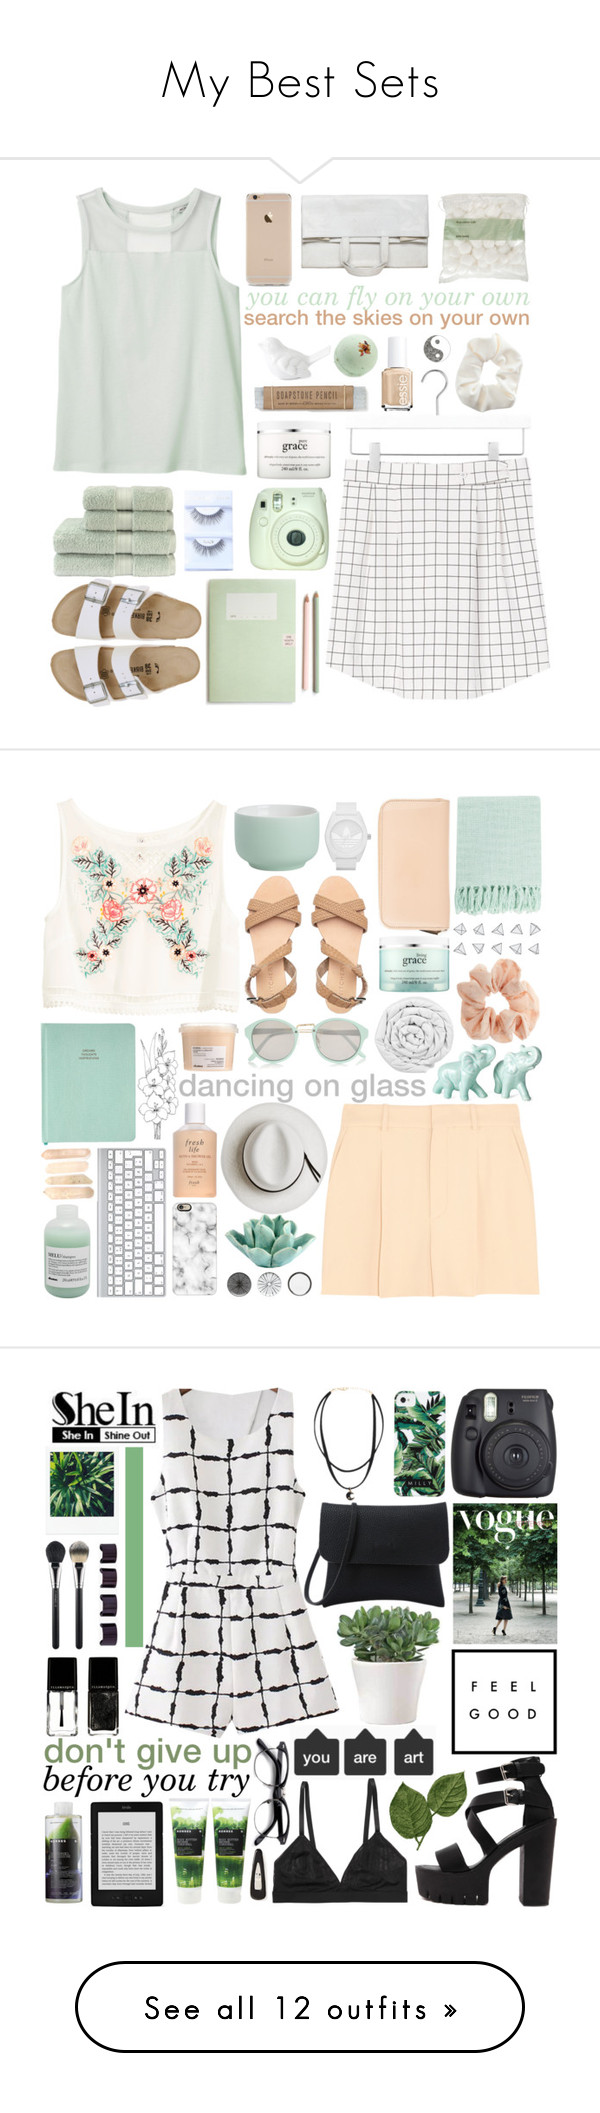 """""""My Best Sets"""" by glowing-eyes ❤ liked on Polyvore featuring Monki, Kate Spade, Birkenstock, Fuji, Essie, Christy, philosophy, Topshop, John Lewis and Maison Margiela"""